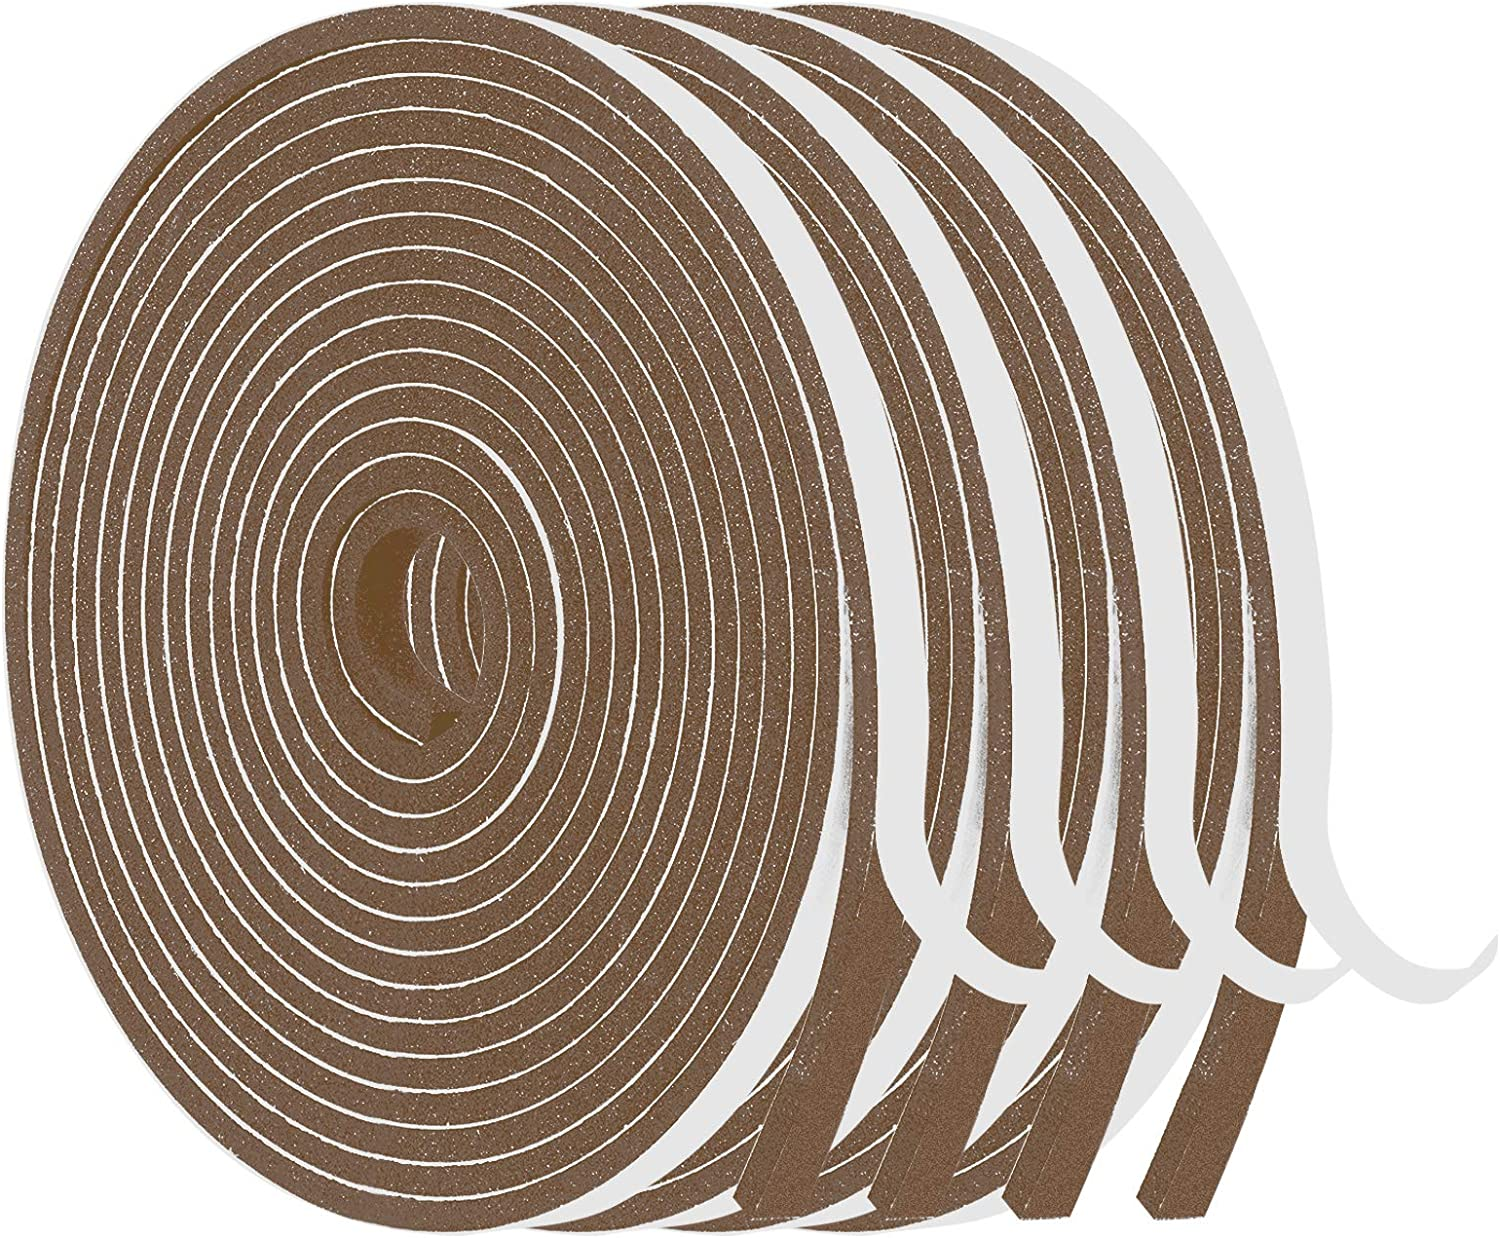 Foam Weatherstrip-4 Rolls, 1/4 Inch Wide X 1/8 Inch Thick Total 26 Feet Long, Brown Weather Stripping for Door and Window Insulation, Soundproof Foam Seal Tape (6.5ft x 4 Rolls)